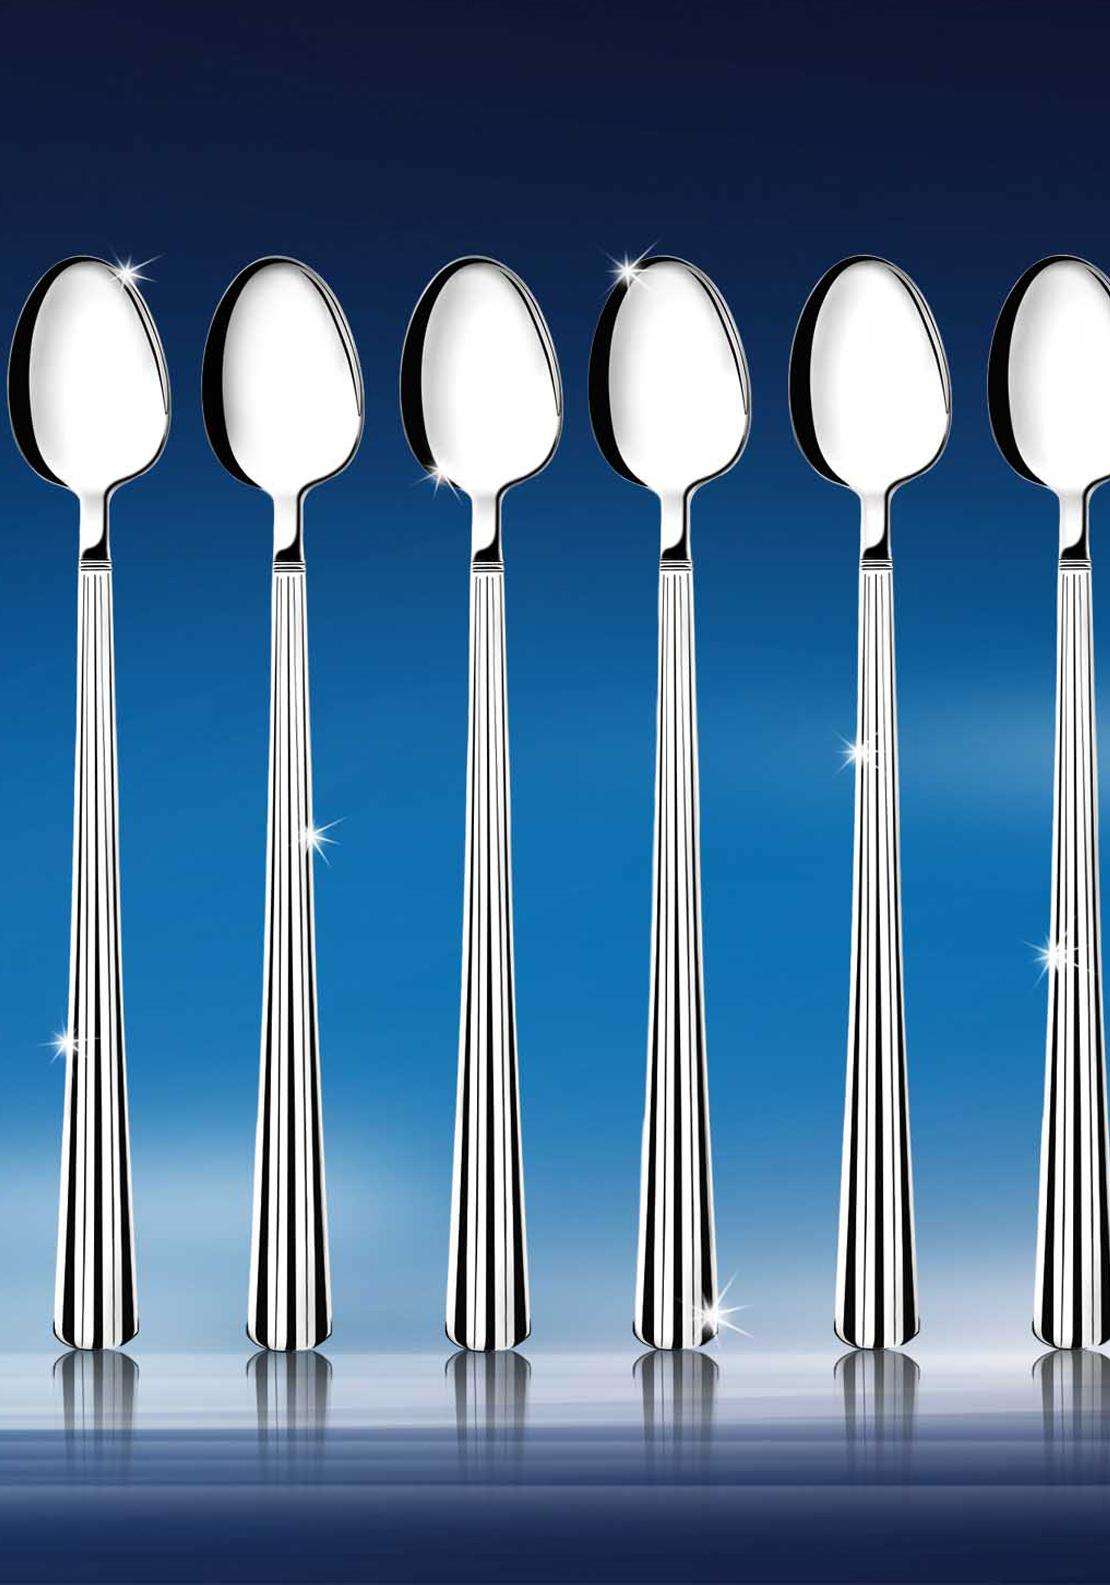 Newbridge Nova Stainless Steel Latte Spoons, Set of 6